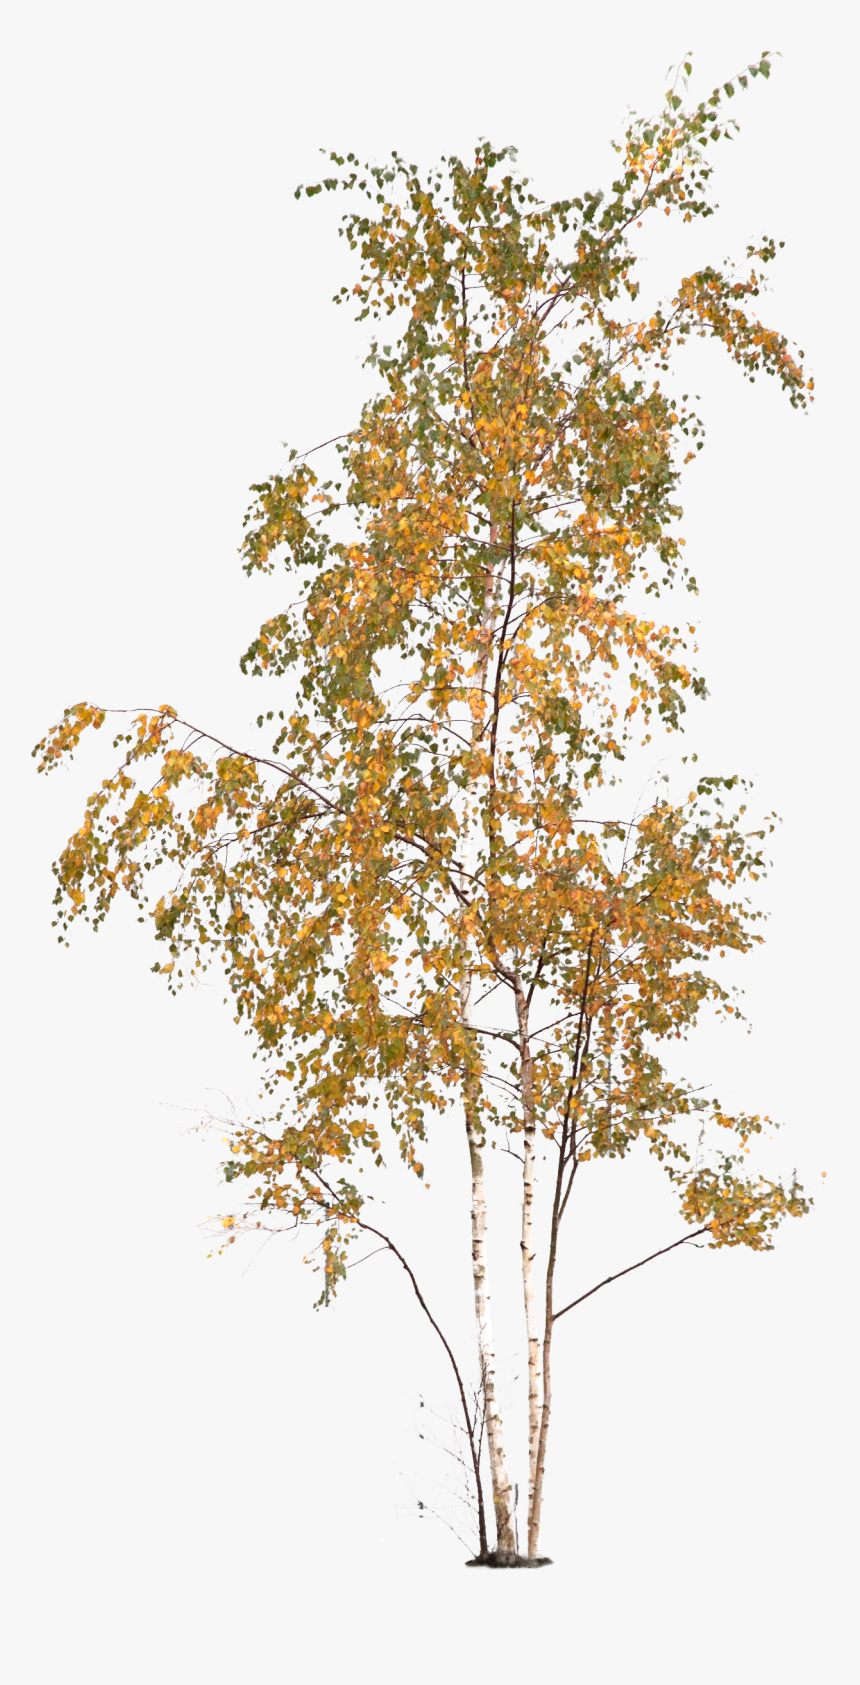 Plane-tree Family, HD Png Download, Free Download